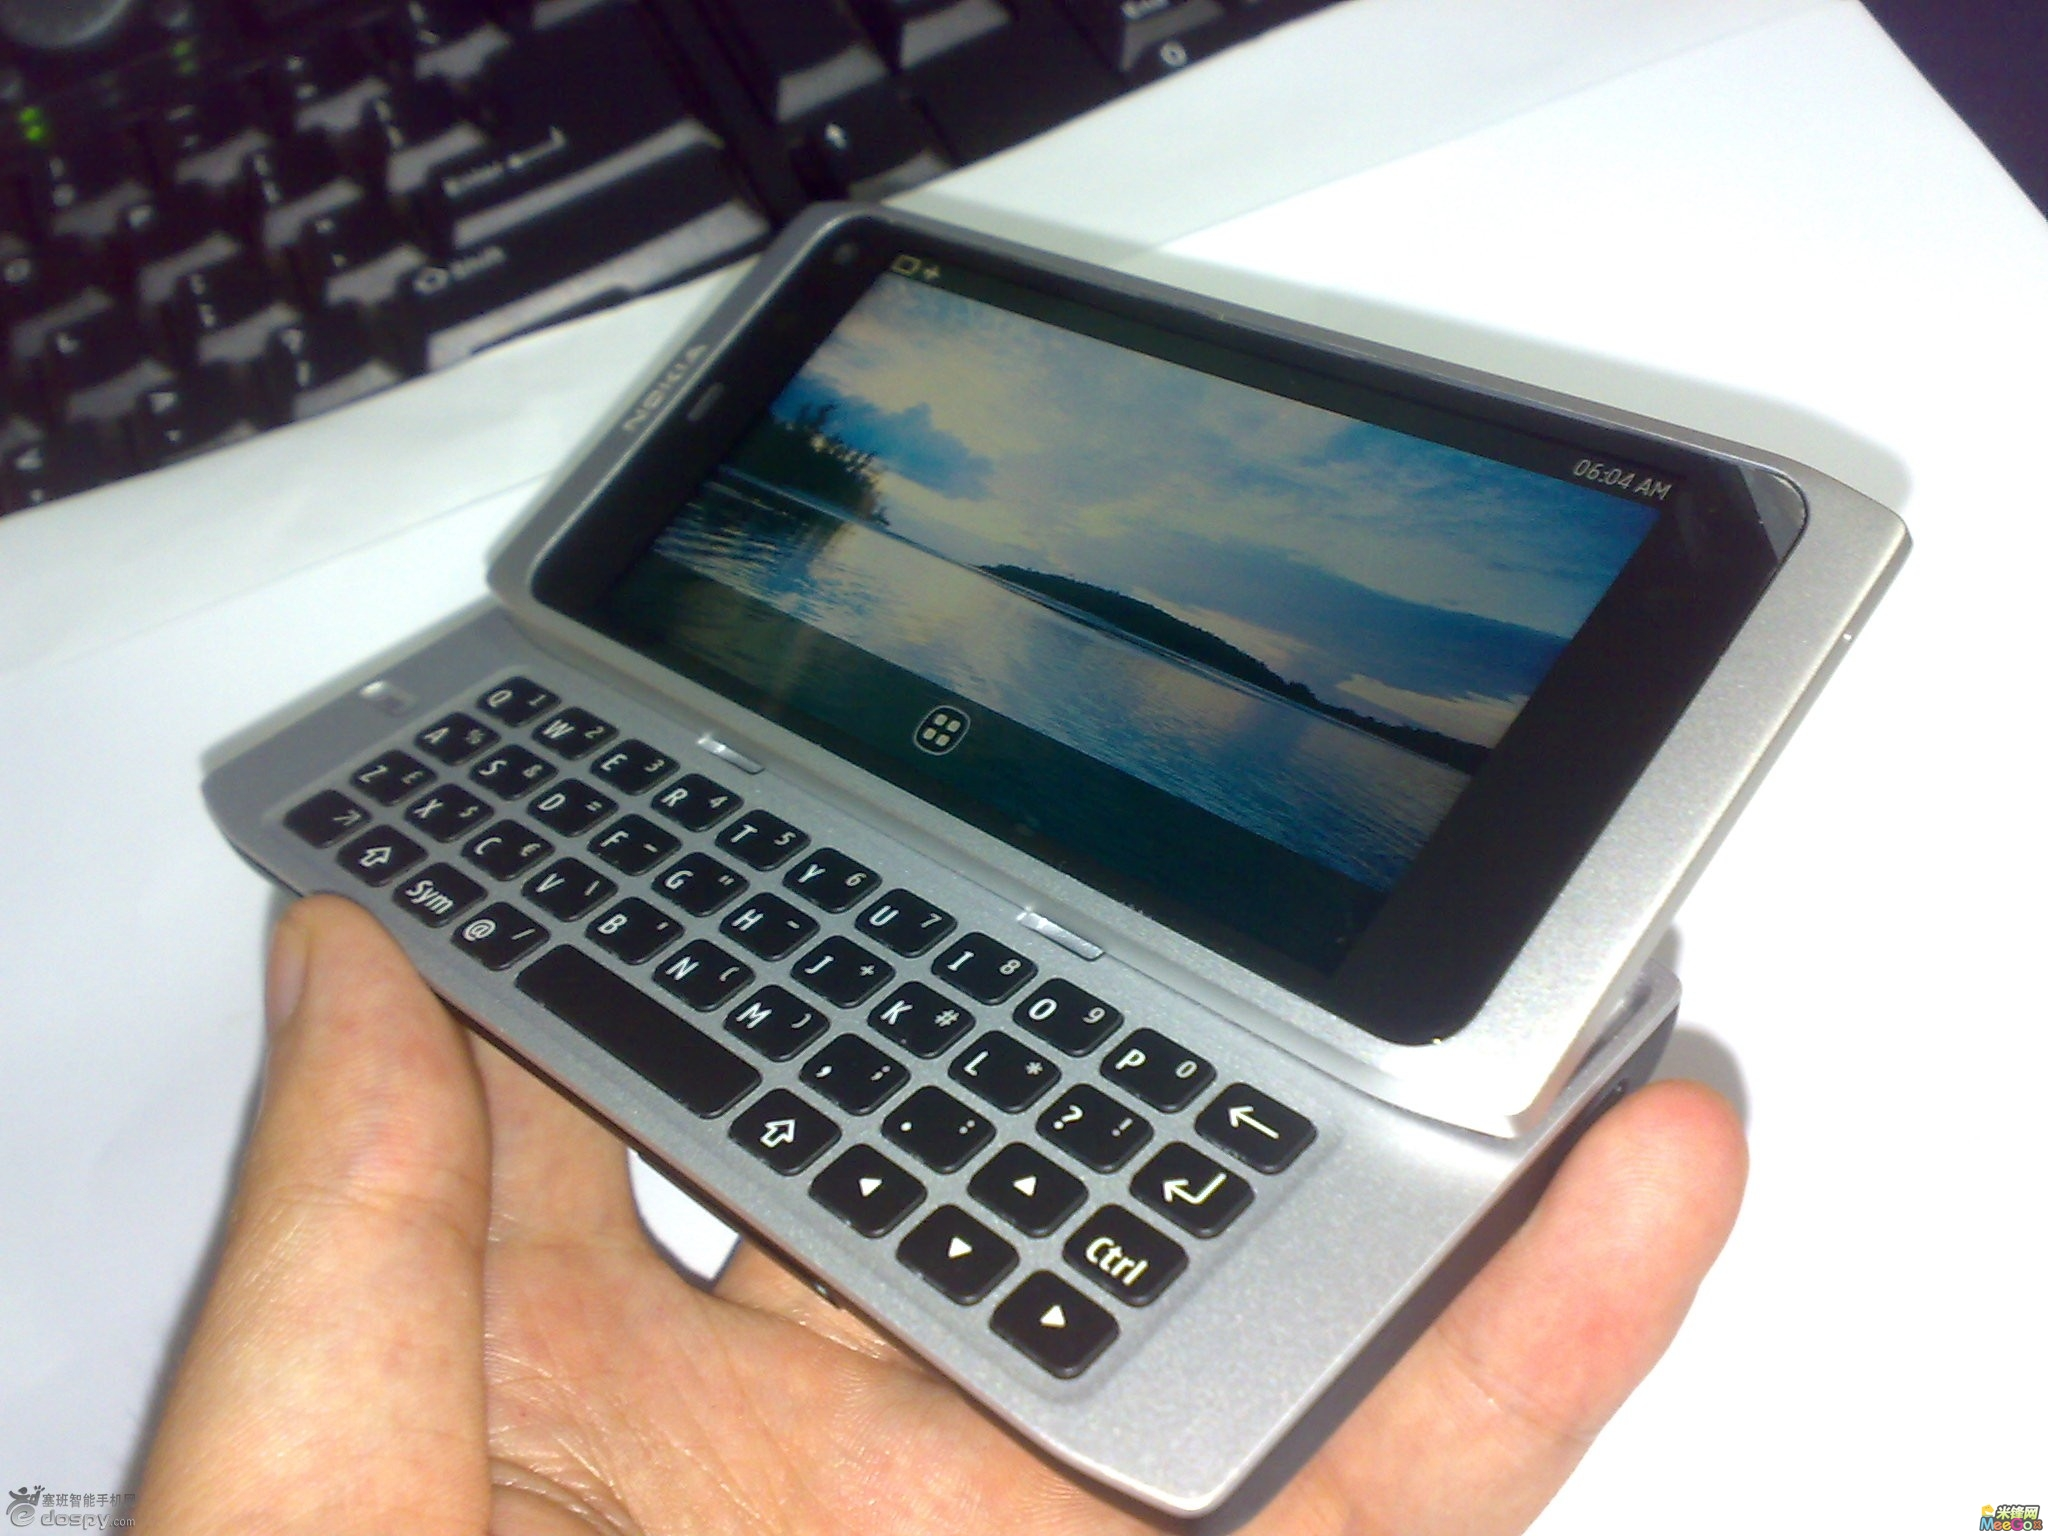 Leak allegedly shows Nokia N9, could be first MeeGo phone